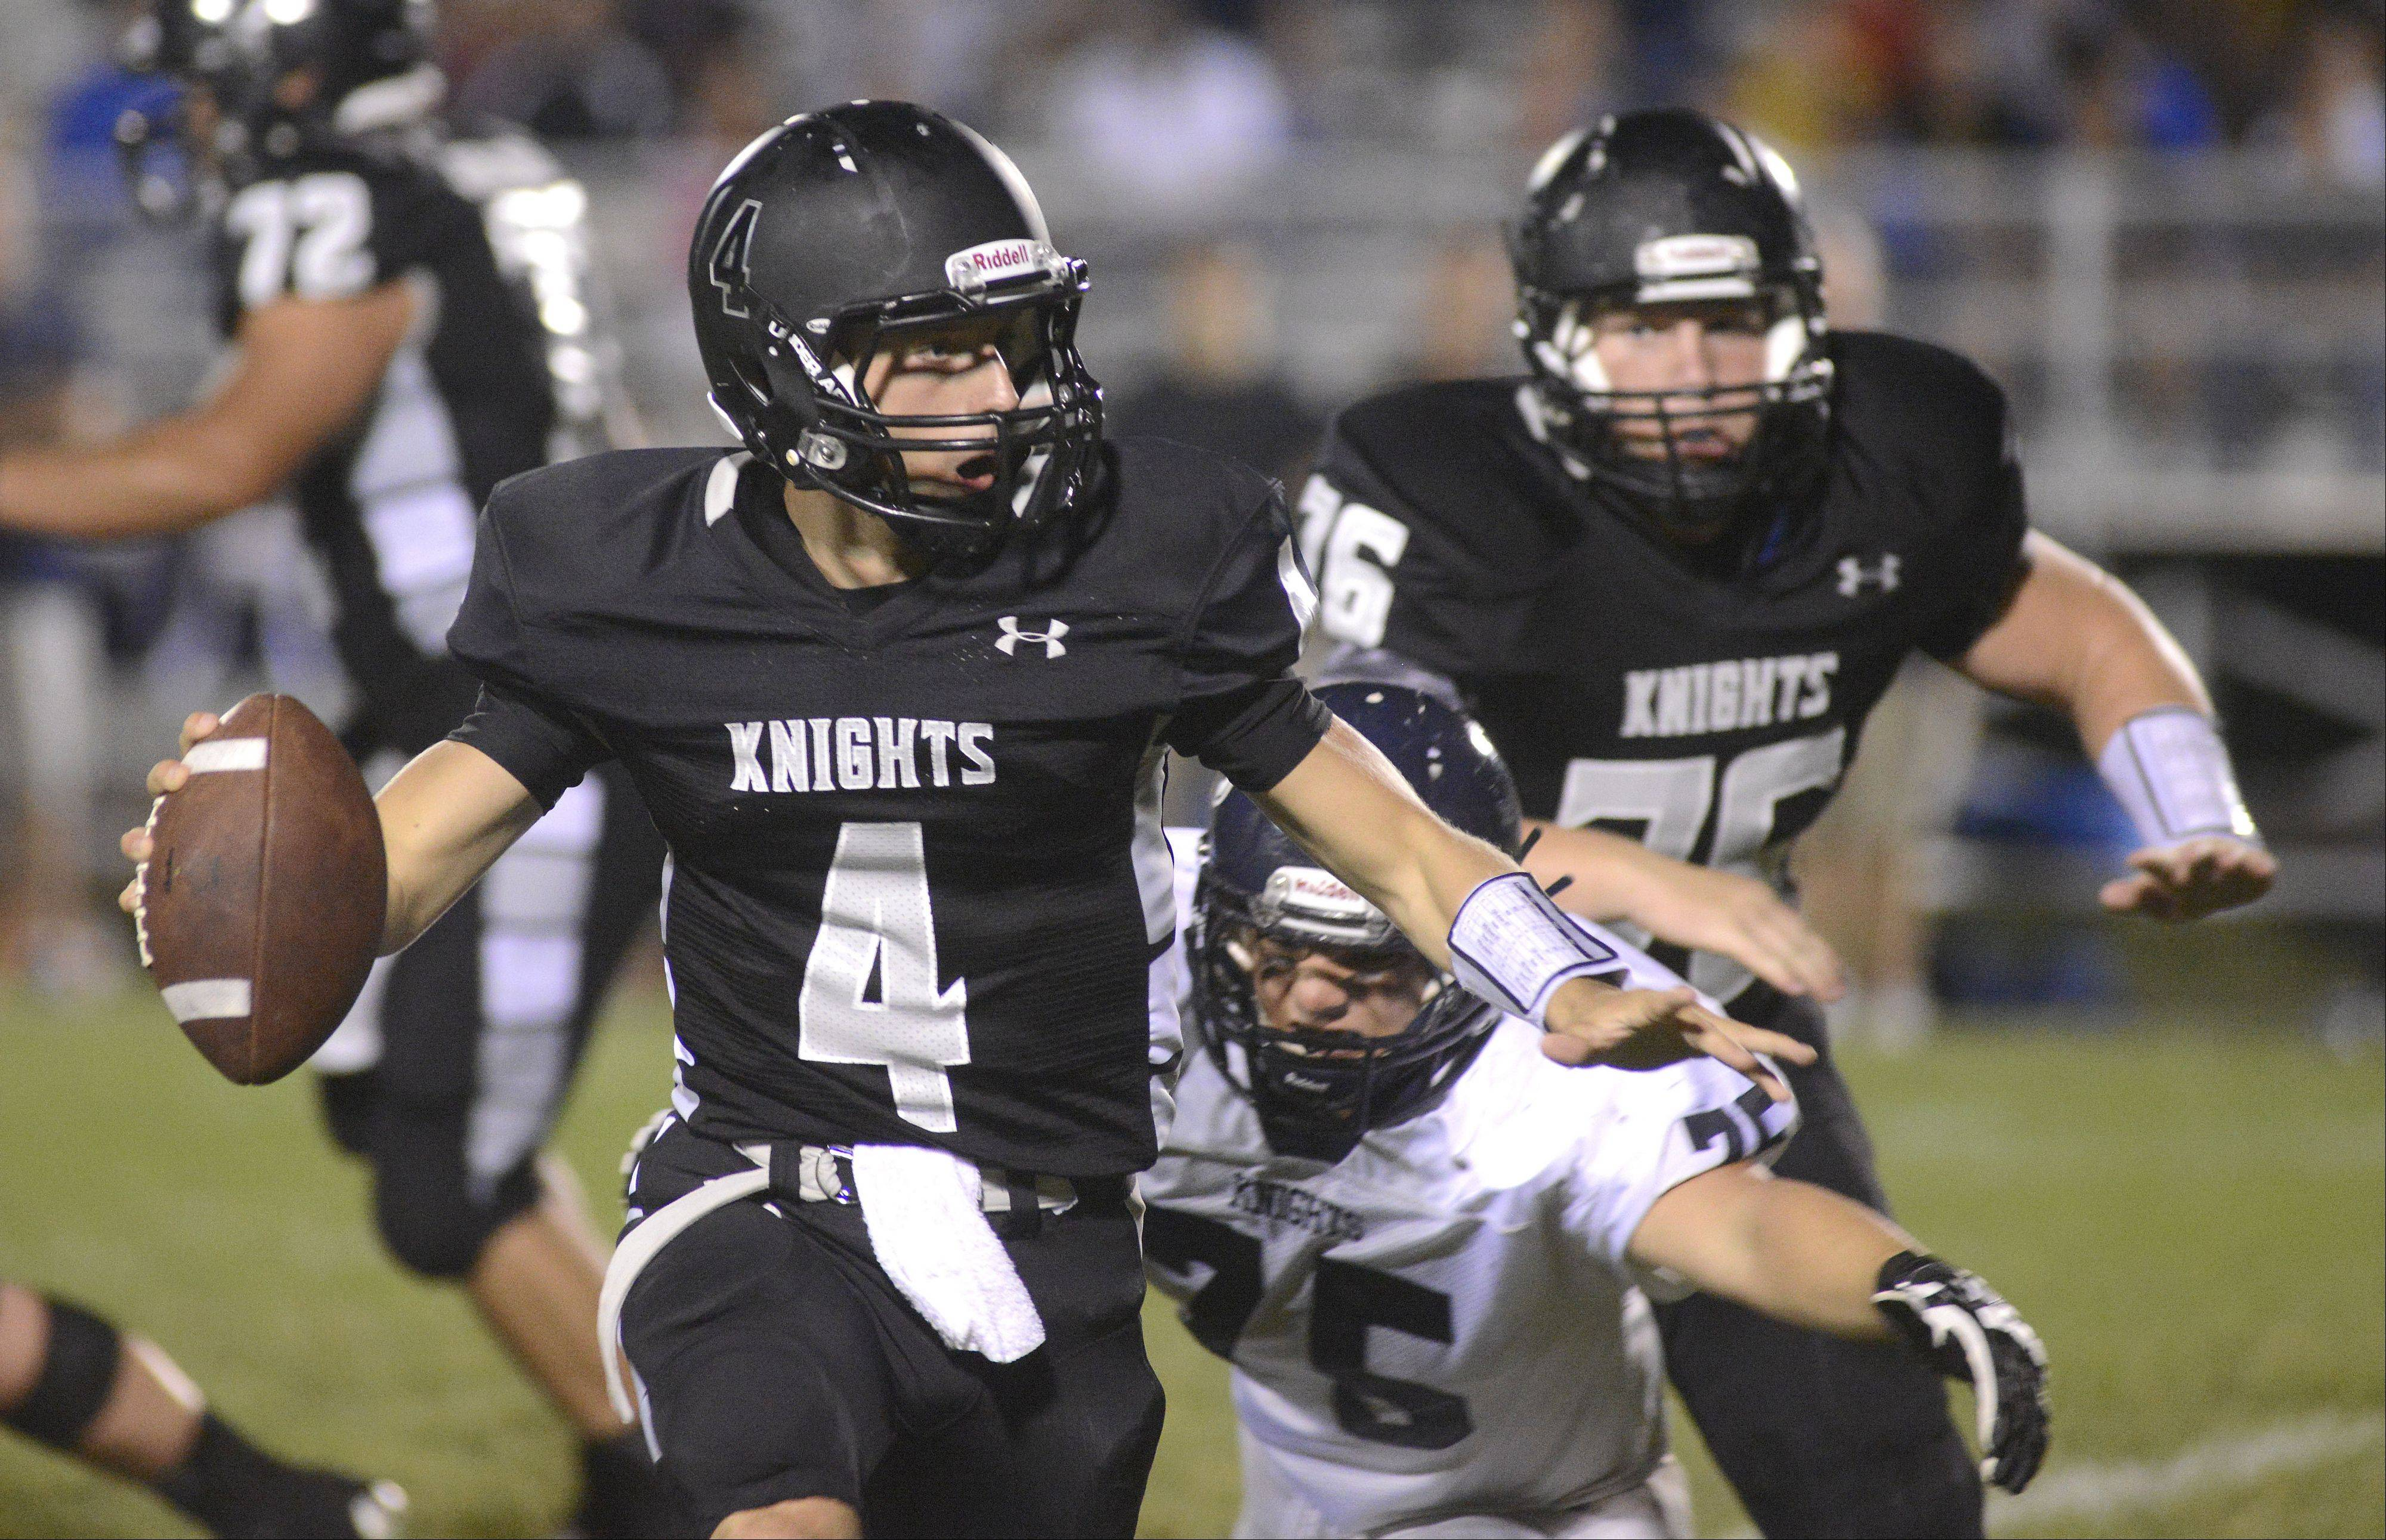 Along with Aurora Christian and Marmion, Kaneland -- with quarterback Drew David fresh off a career-high 6 touchdowns in last Friday's win -- takes a 4-0 record into its Week 5 game.